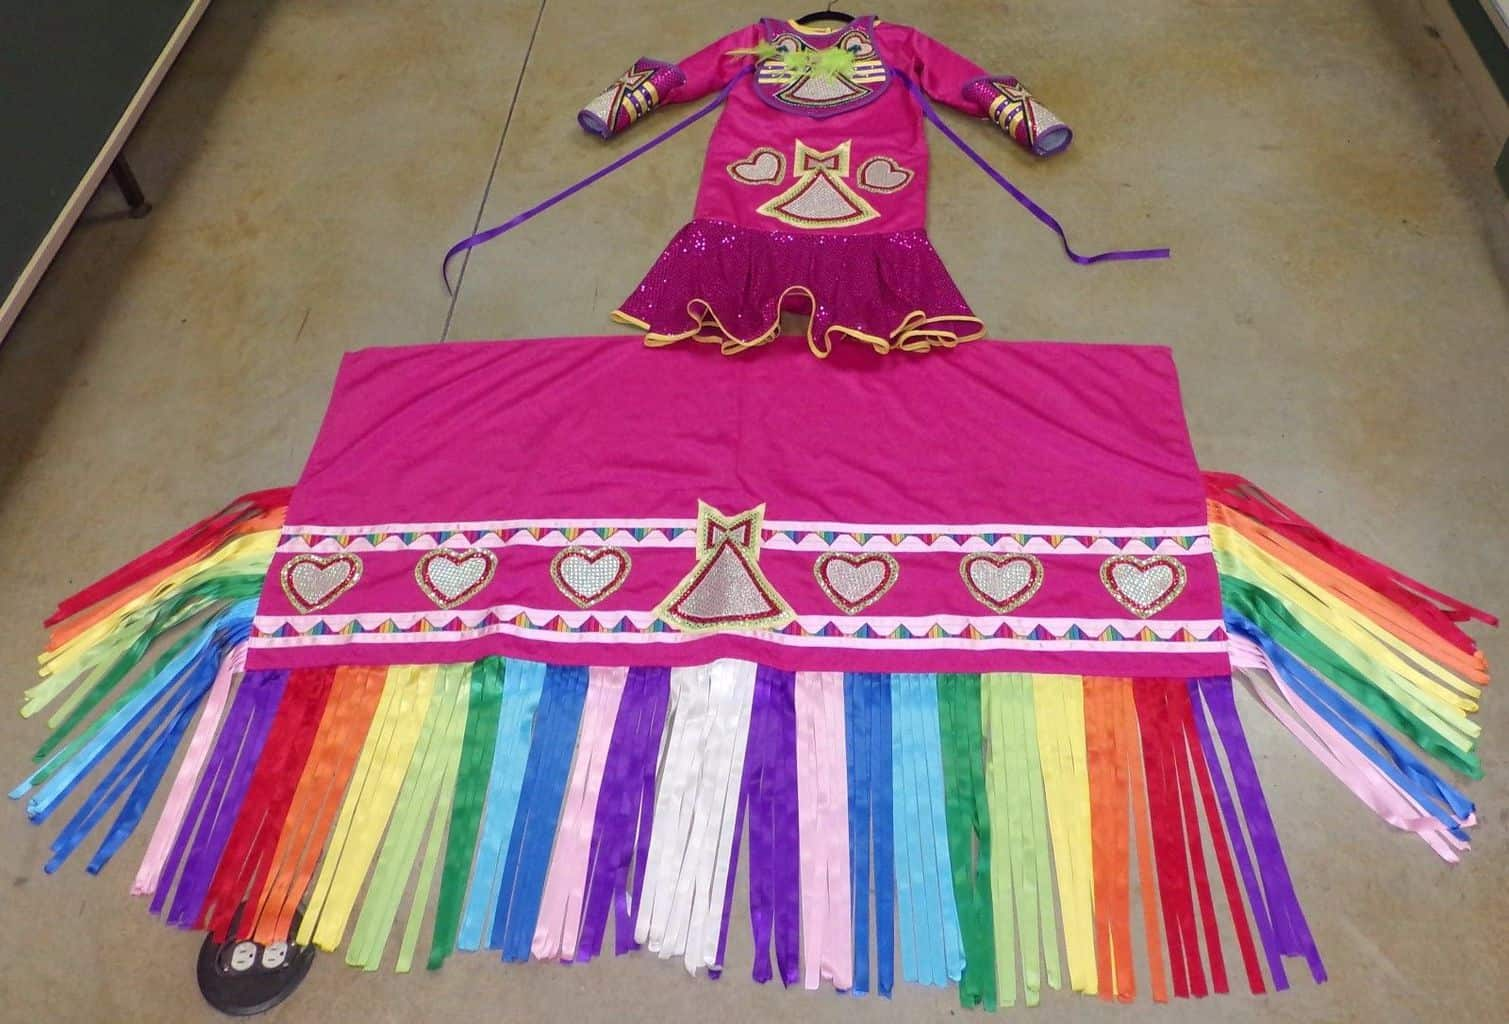 Native American FANCY DANCE RIBBON Dress Girl Regalia Large Arm Bands Shawl Bib – eBay find of the week - PowWows.com – Native American Pow Wows